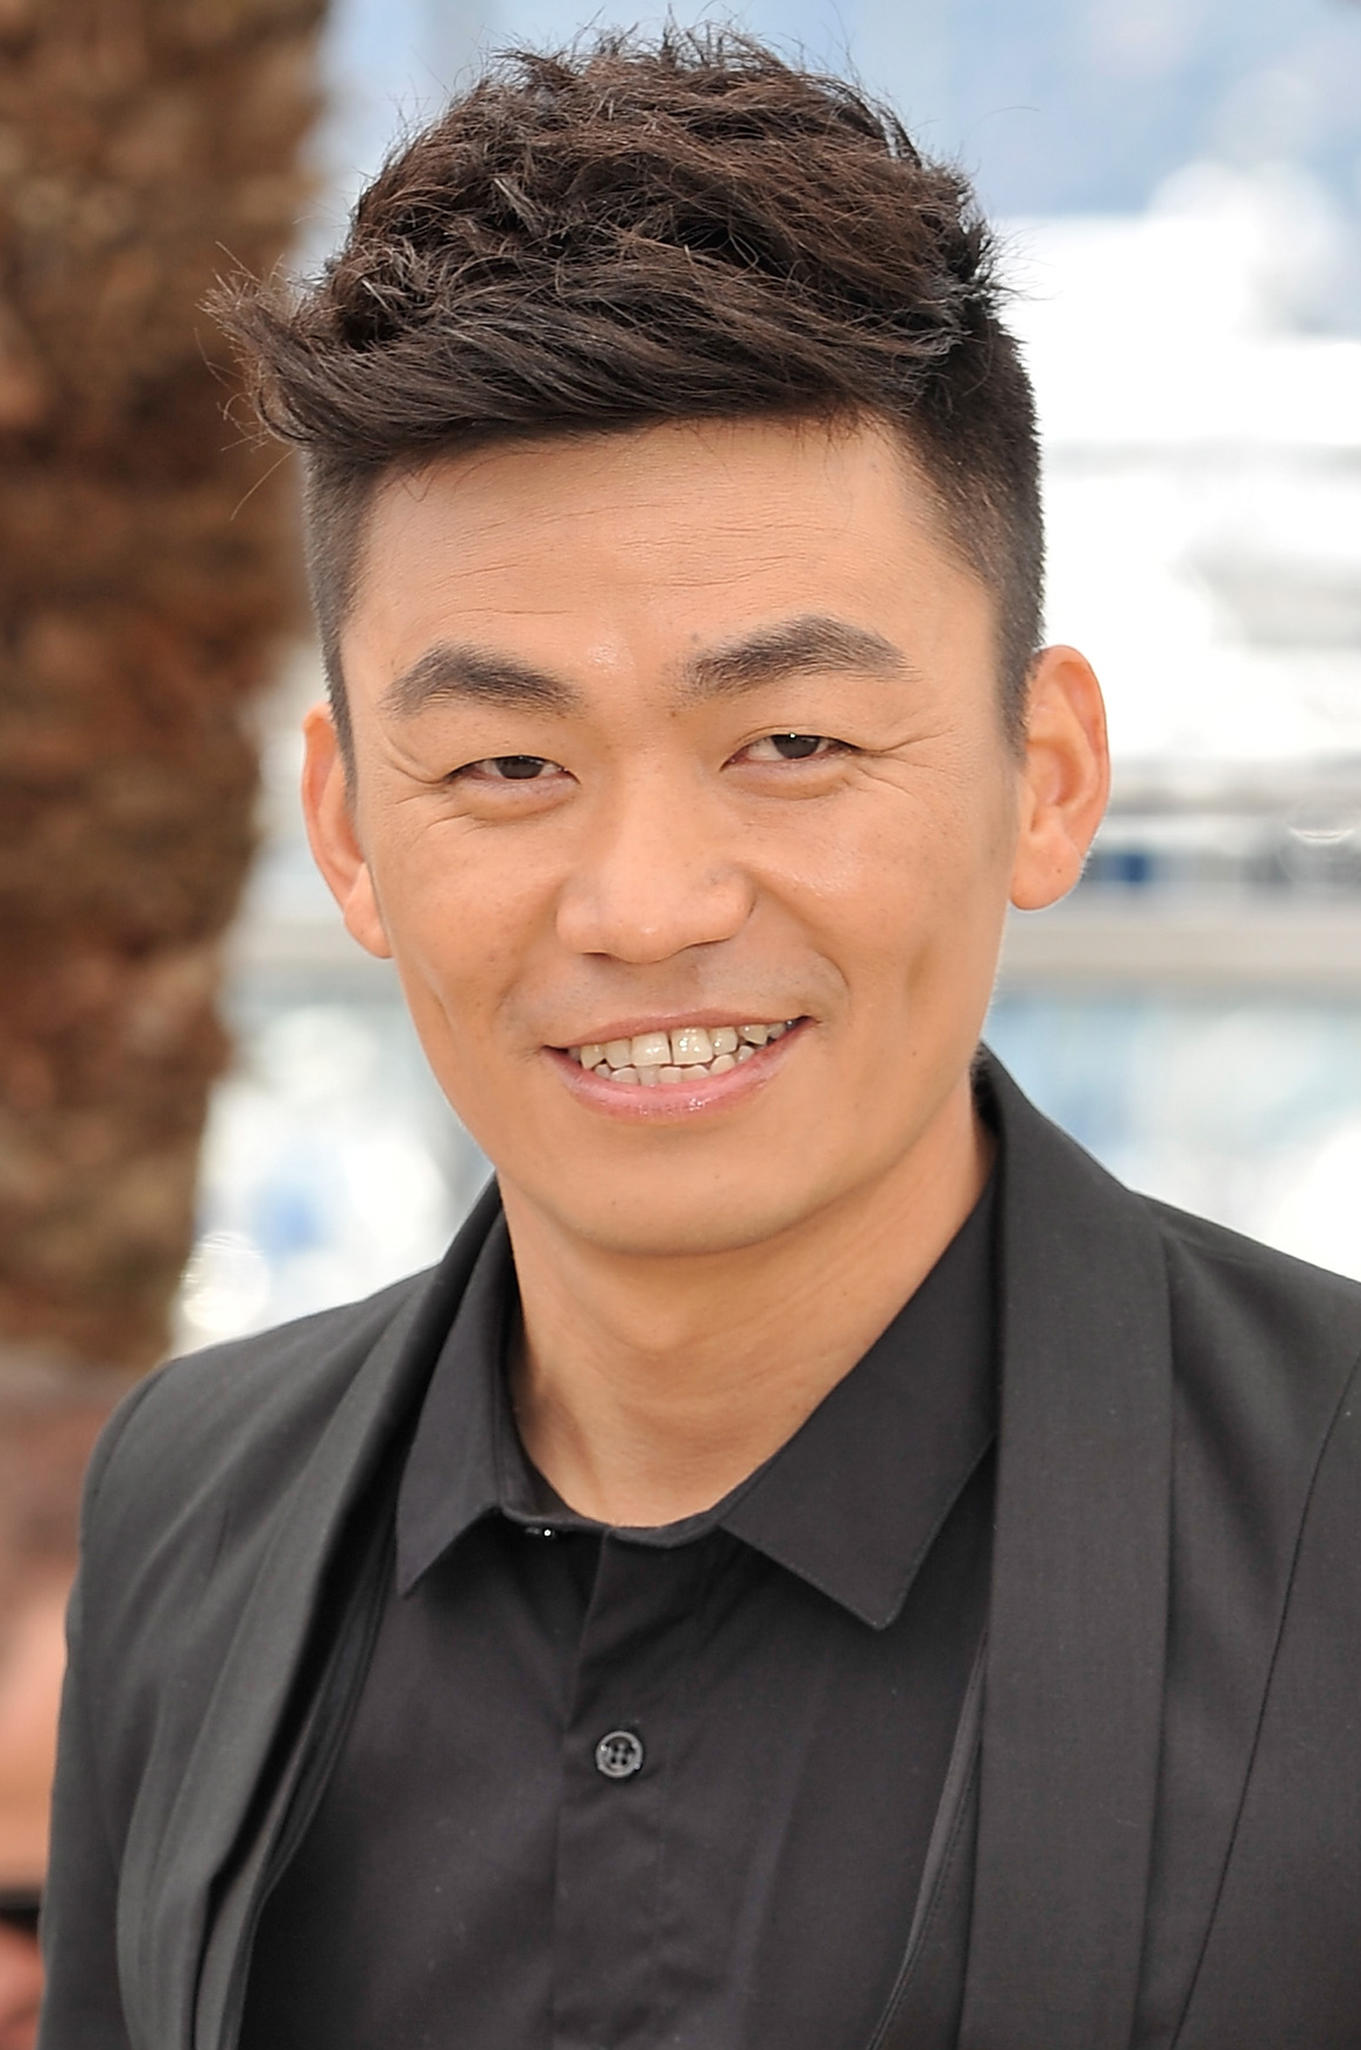 Wang Baoqiang at the Cannes photocall for